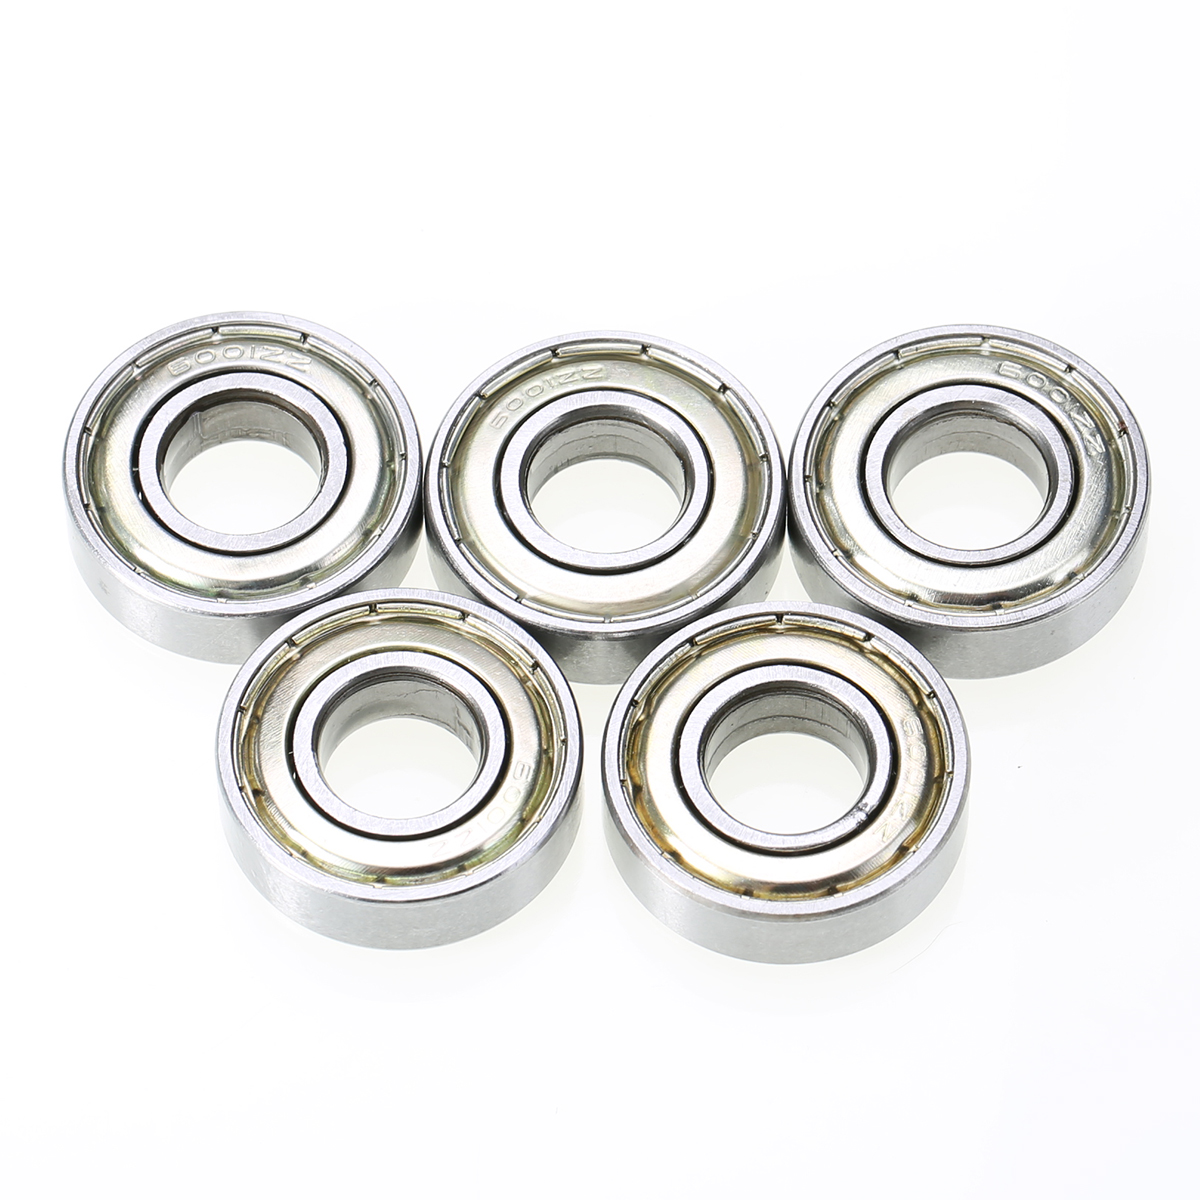 5 Pieces 6001ZZ Ball Bearings Shielded Deep Groove Radial Ball Bearing 12mm * 28mm * 8mm For Electric Motors Conveying Mayitr kb035cpo sb035cpo prb035 radial contact ball bearing size 88 9 104 775 7 938mm